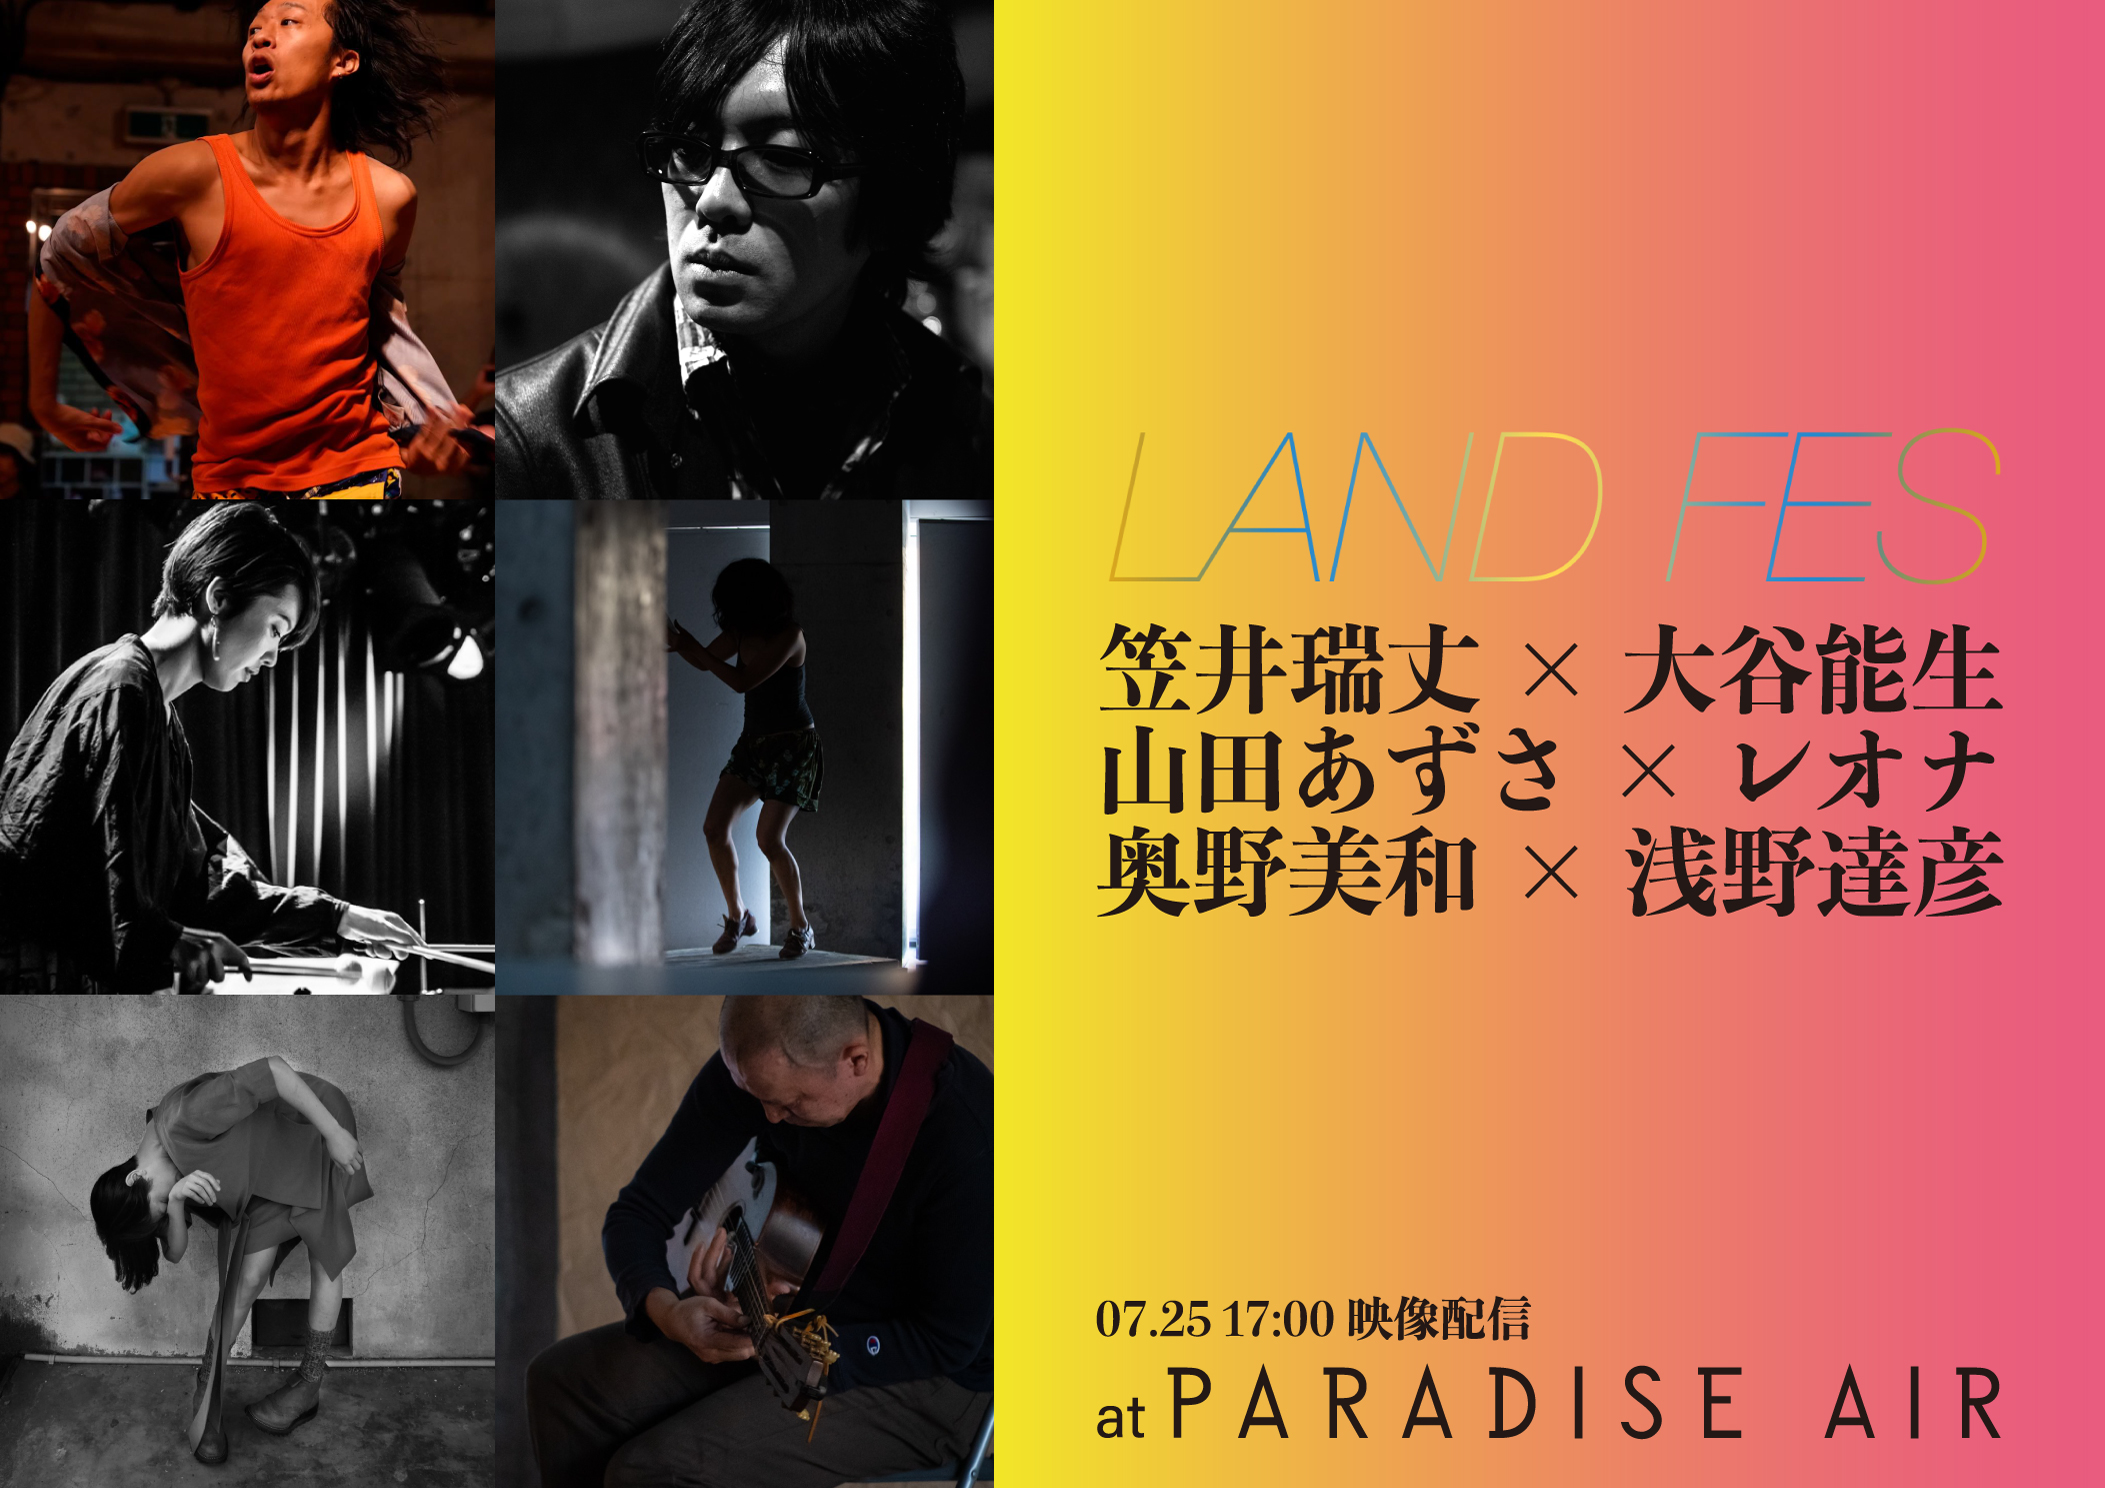 LAND FES vol.12 PARADISE AIR